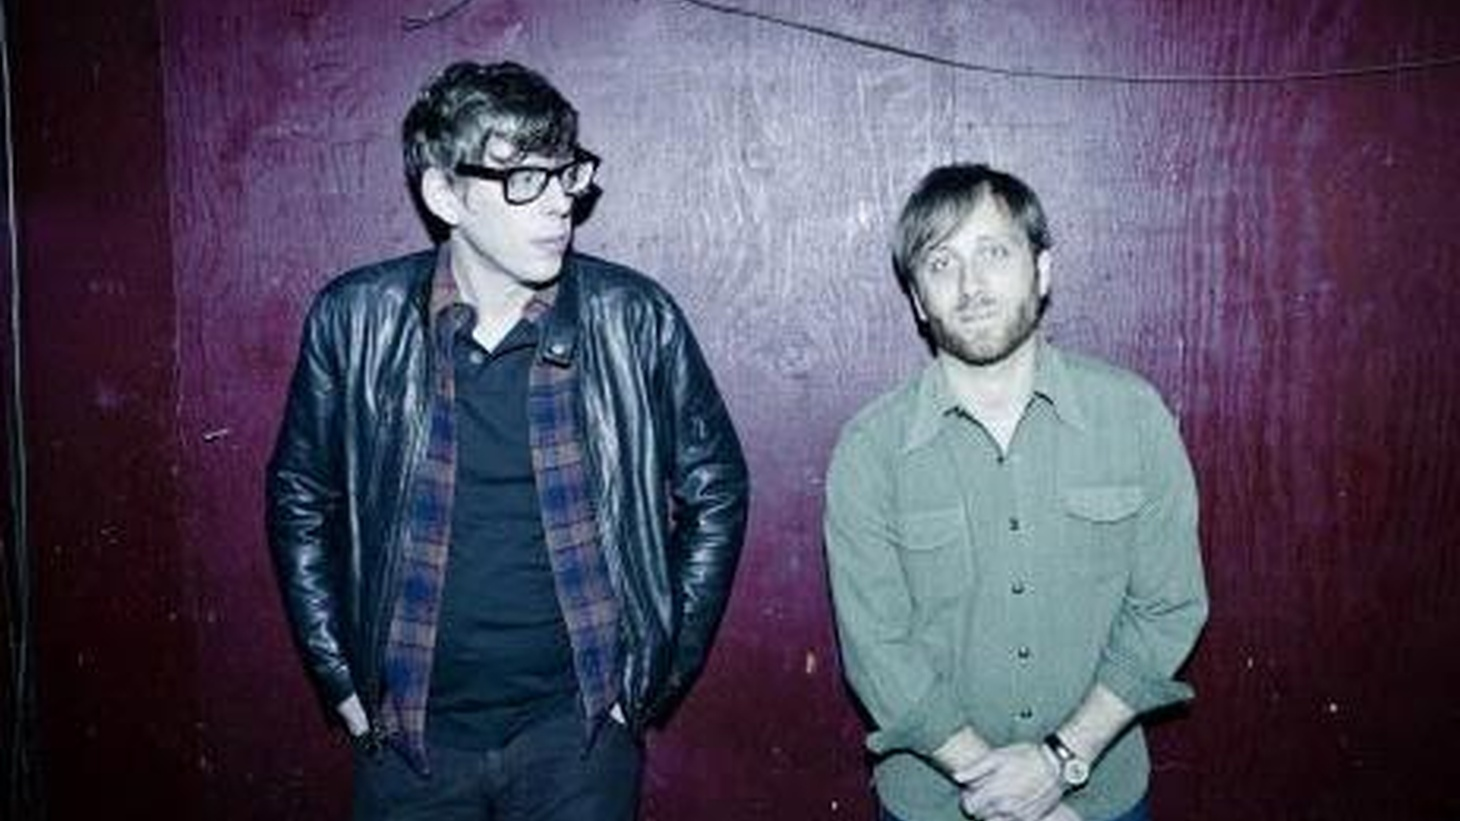 We air a special preview with The Black Keys as they unveil tracks from their highly anticipated release, El Camino.